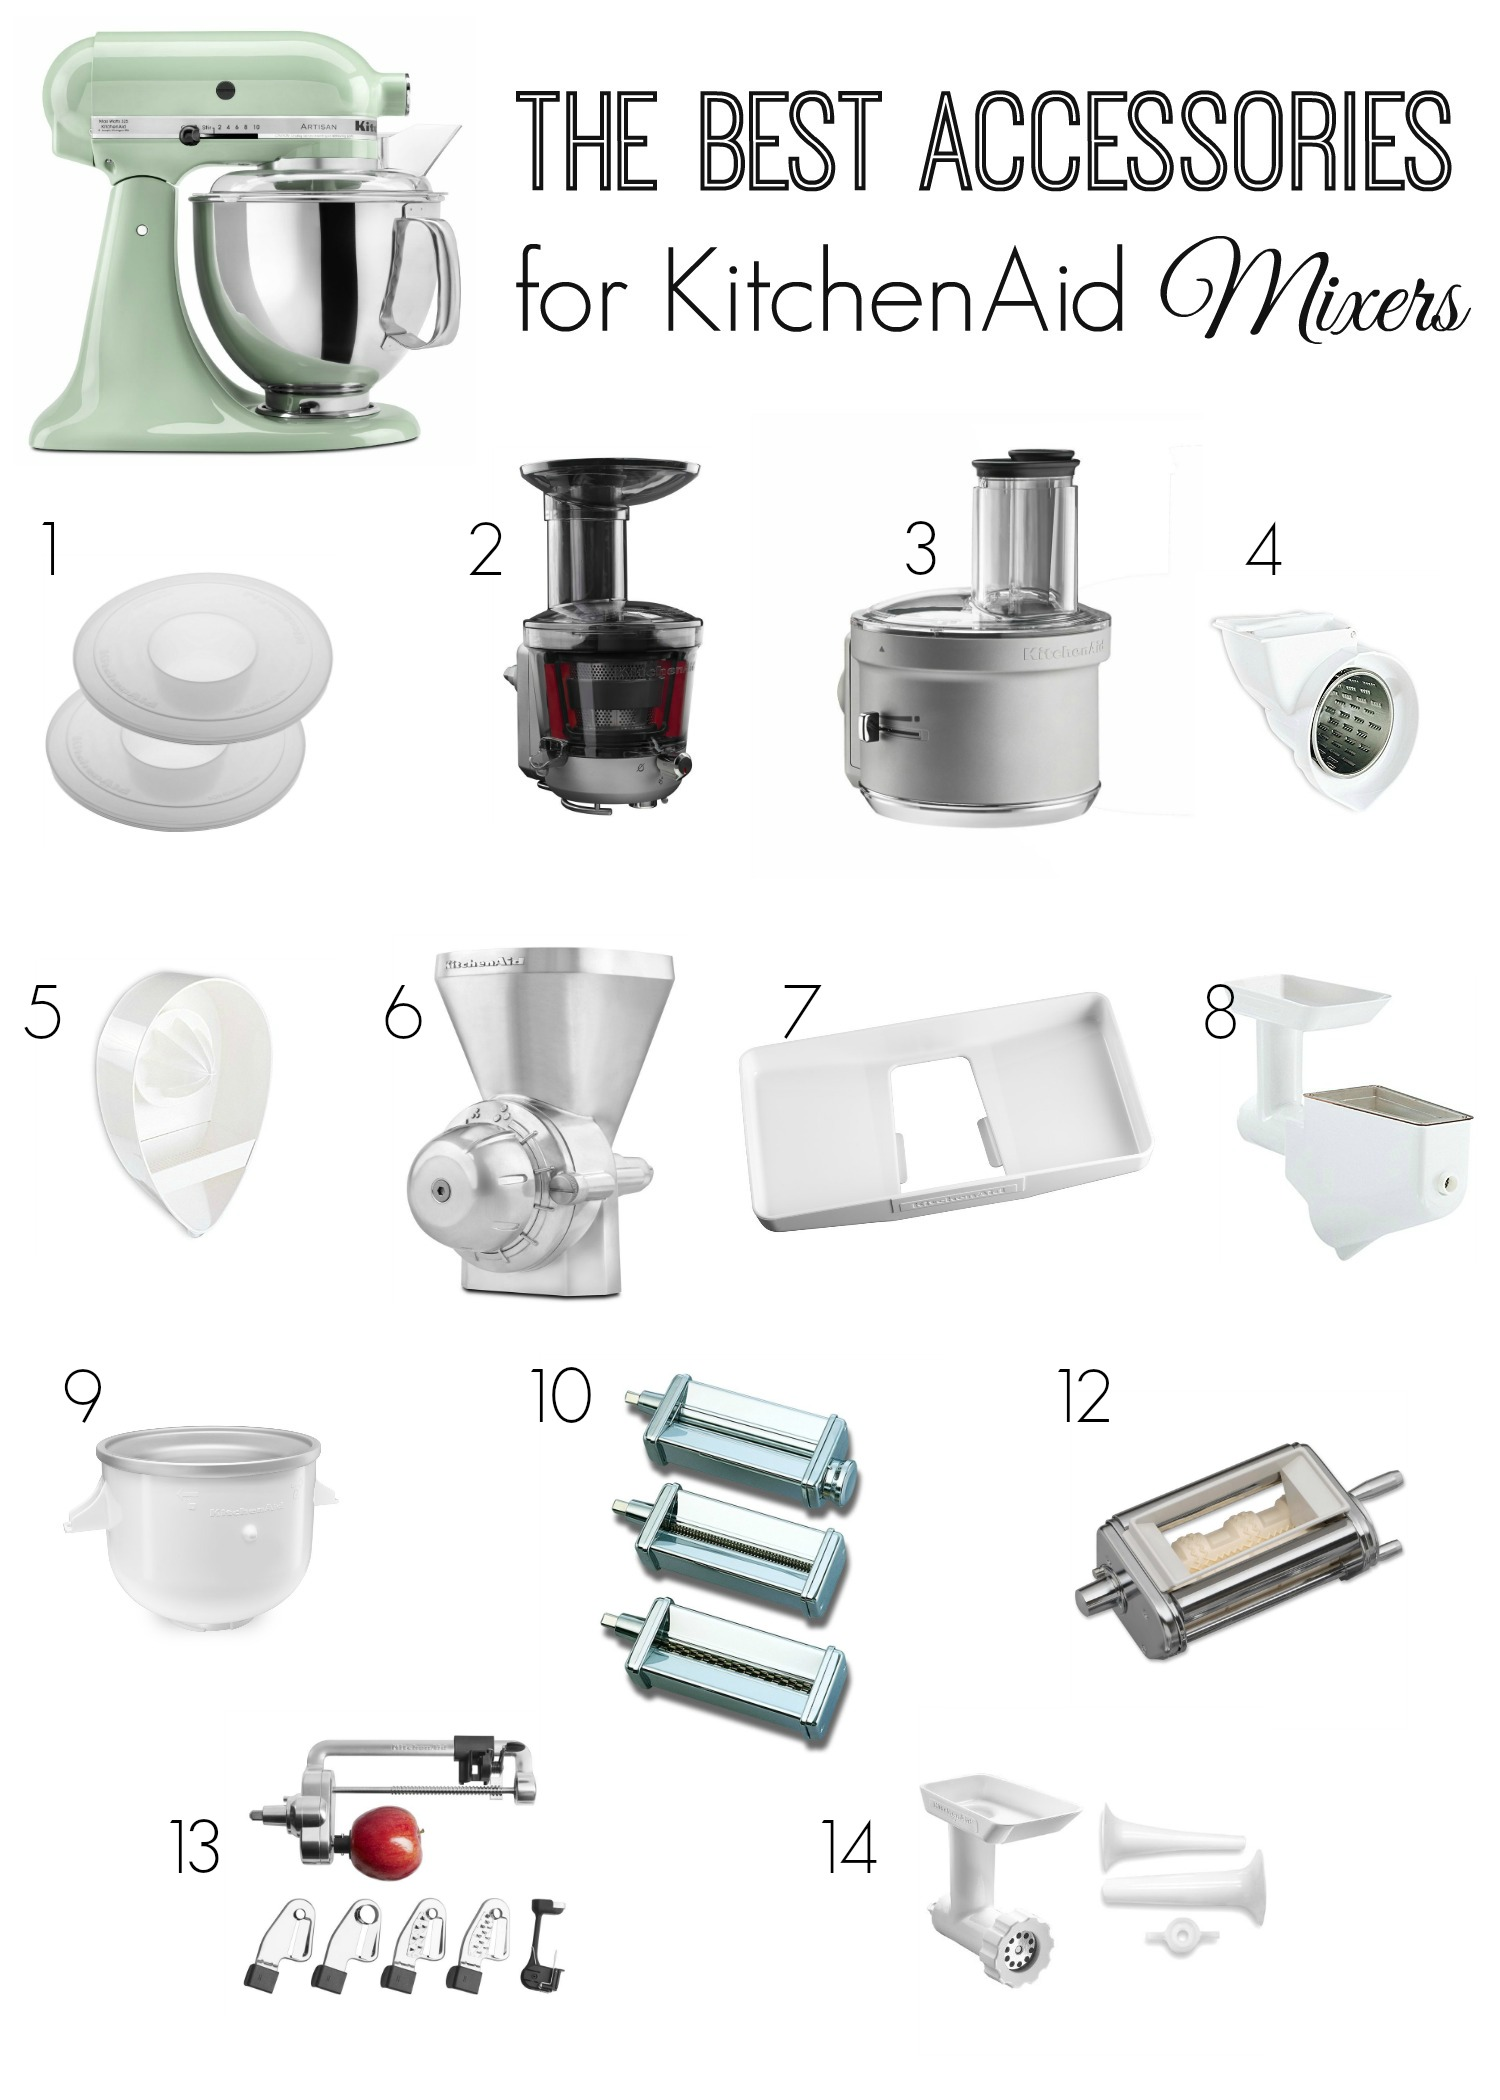 kitchen aid mixer accessories tablecloths best for kitchenaid mixers the naughty mommy